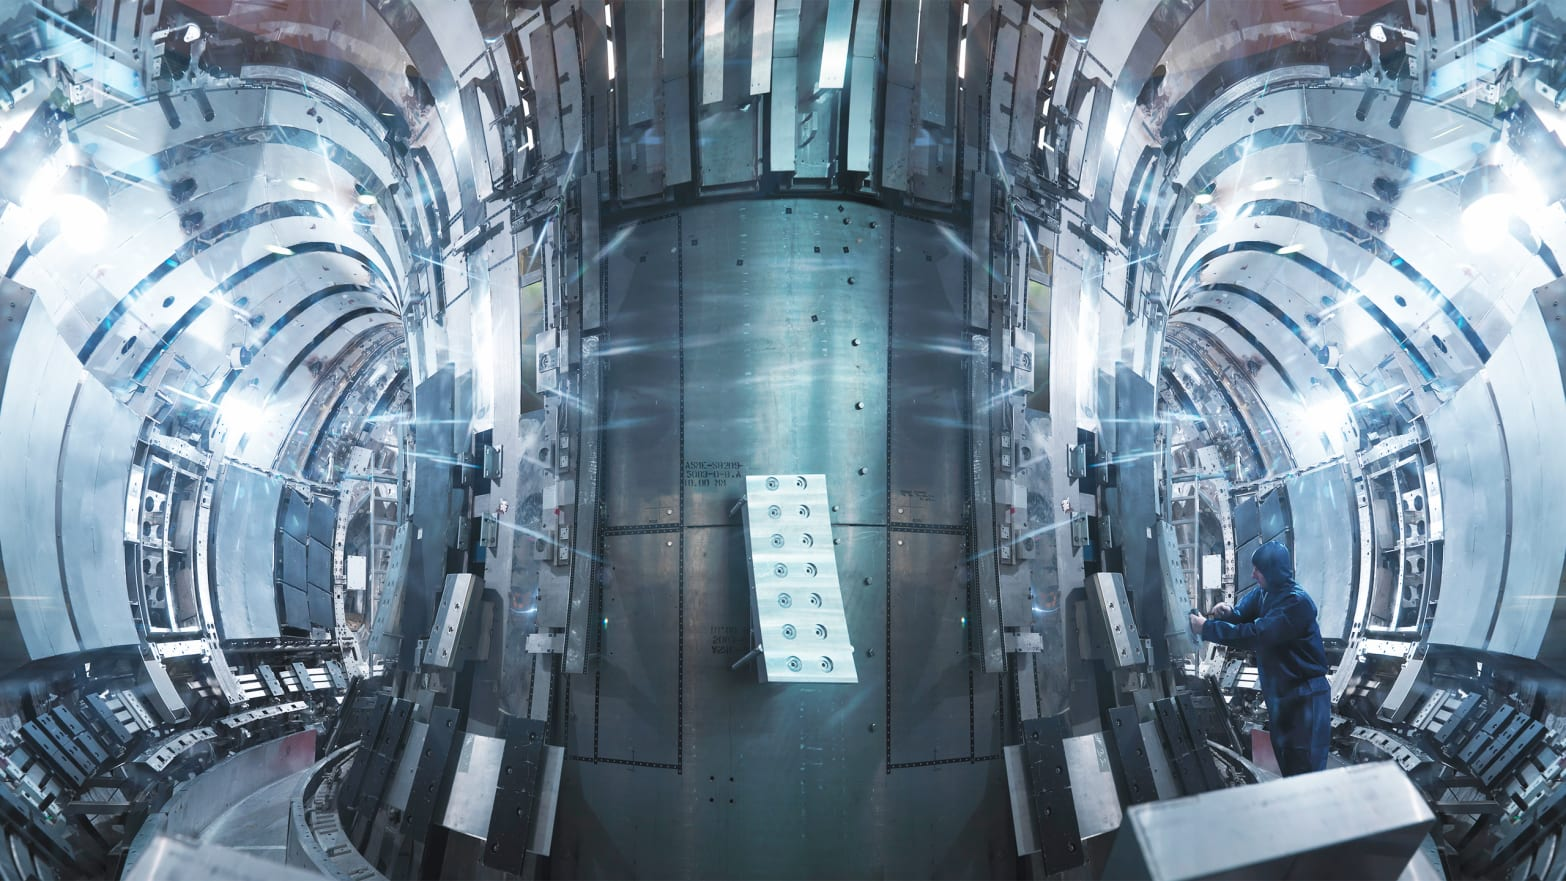 This Fusion Technology Could Make Clean Energy Drastically Cheaper